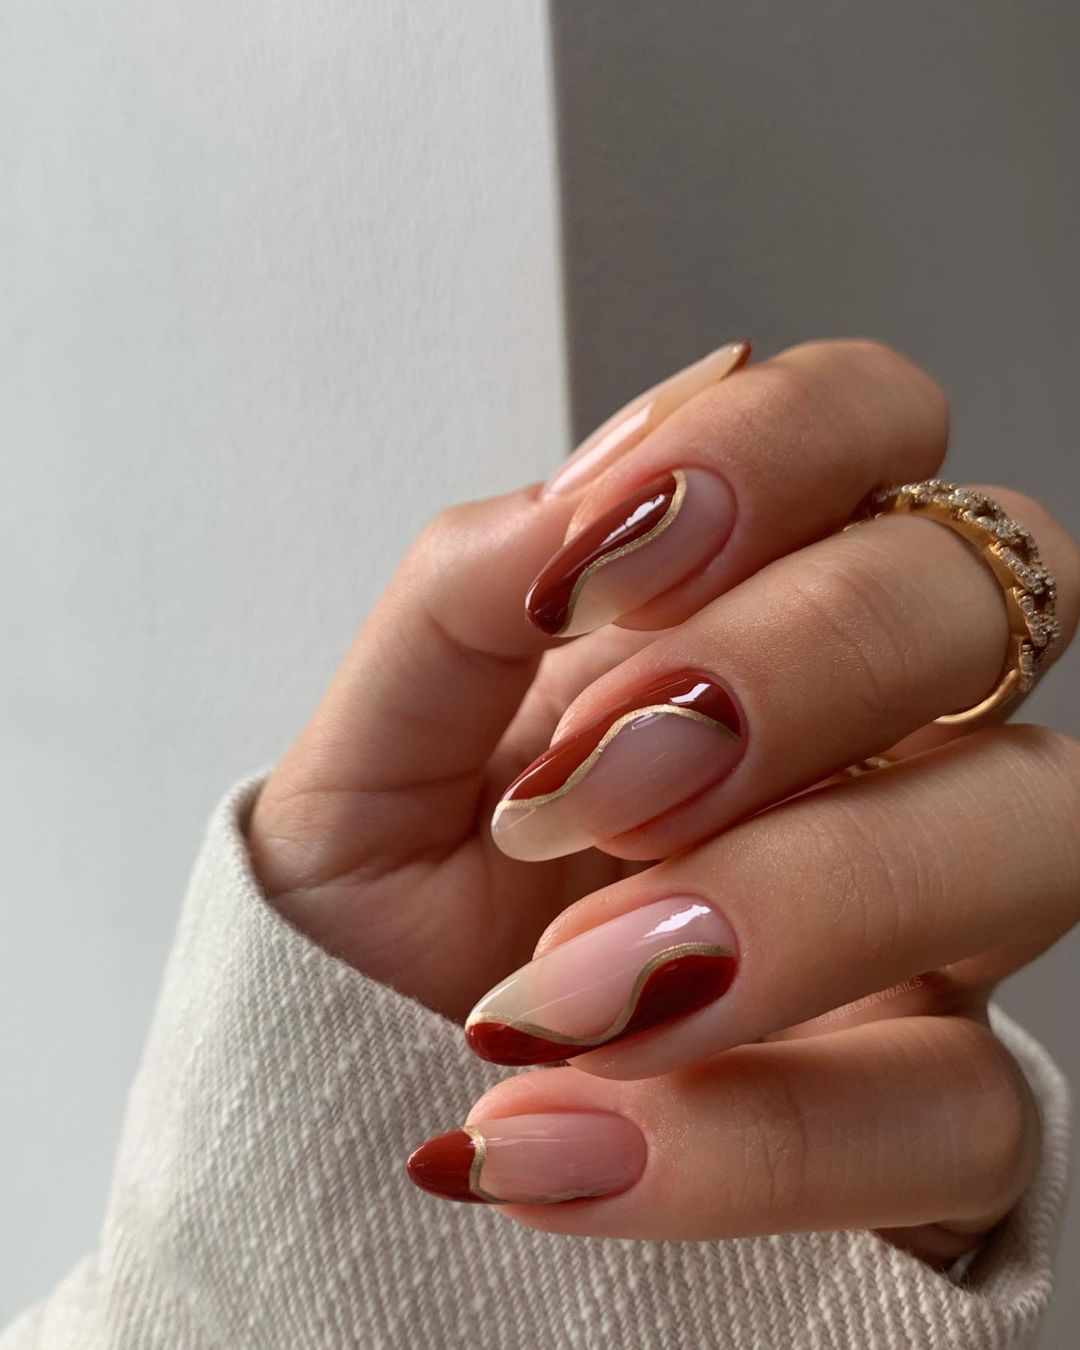 Swirly brown and gold abstract nails with negative space